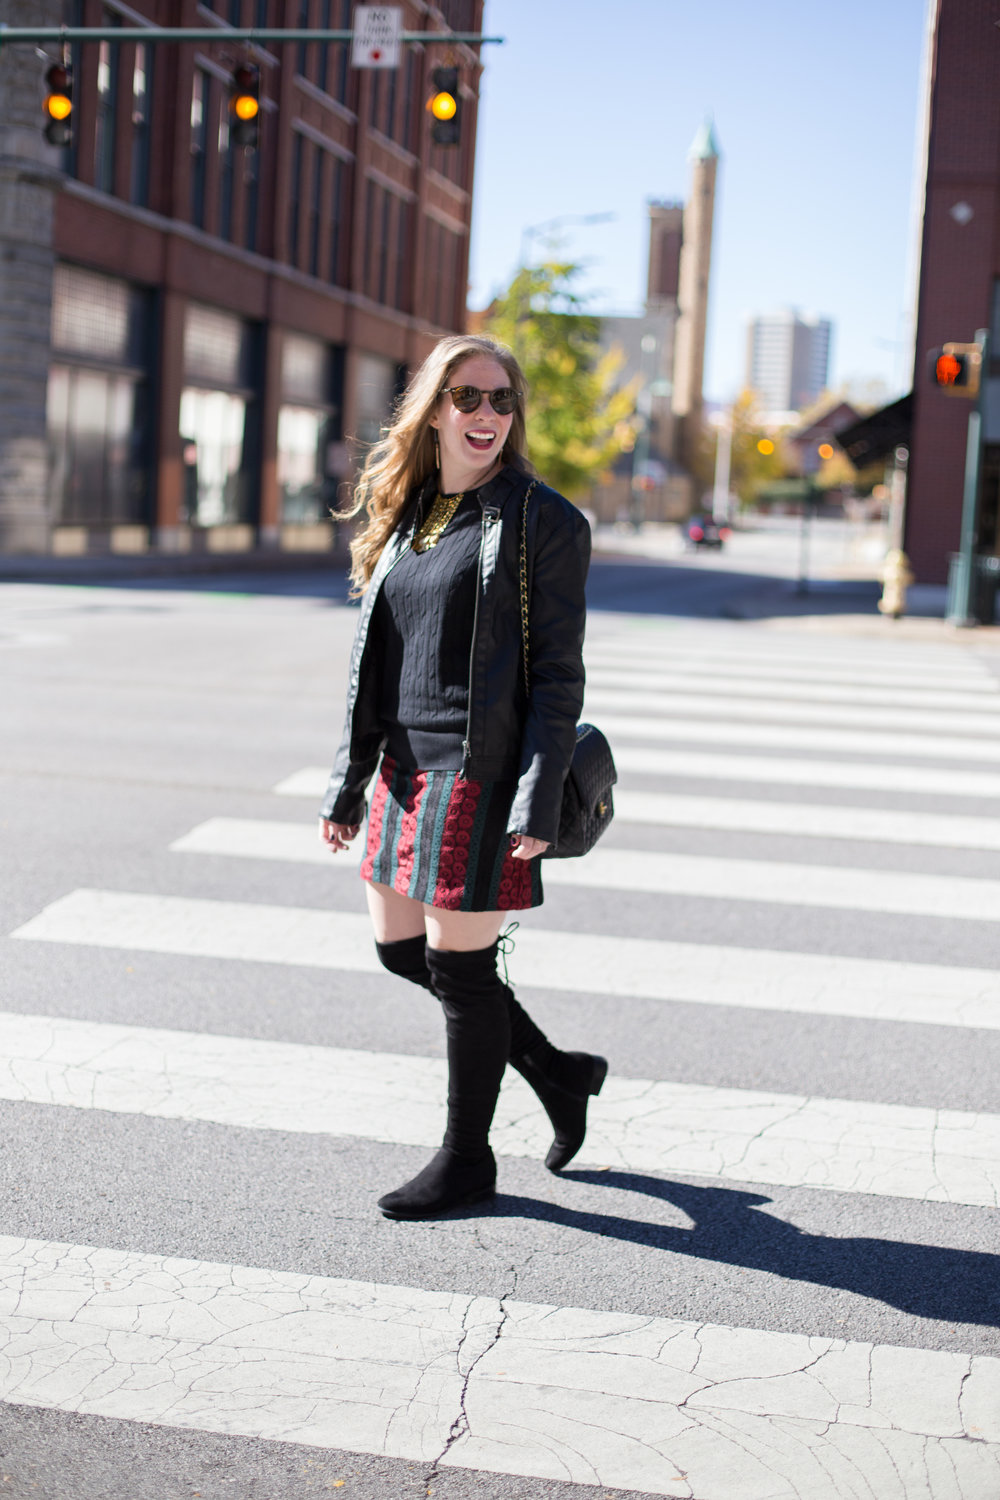 These black suede thigh high boots are one of my new favorite winter items. Paired with a leather jacket, light sweater, and fun lace skirt, they make the perfect comfortable, casual, cute winter outfit.